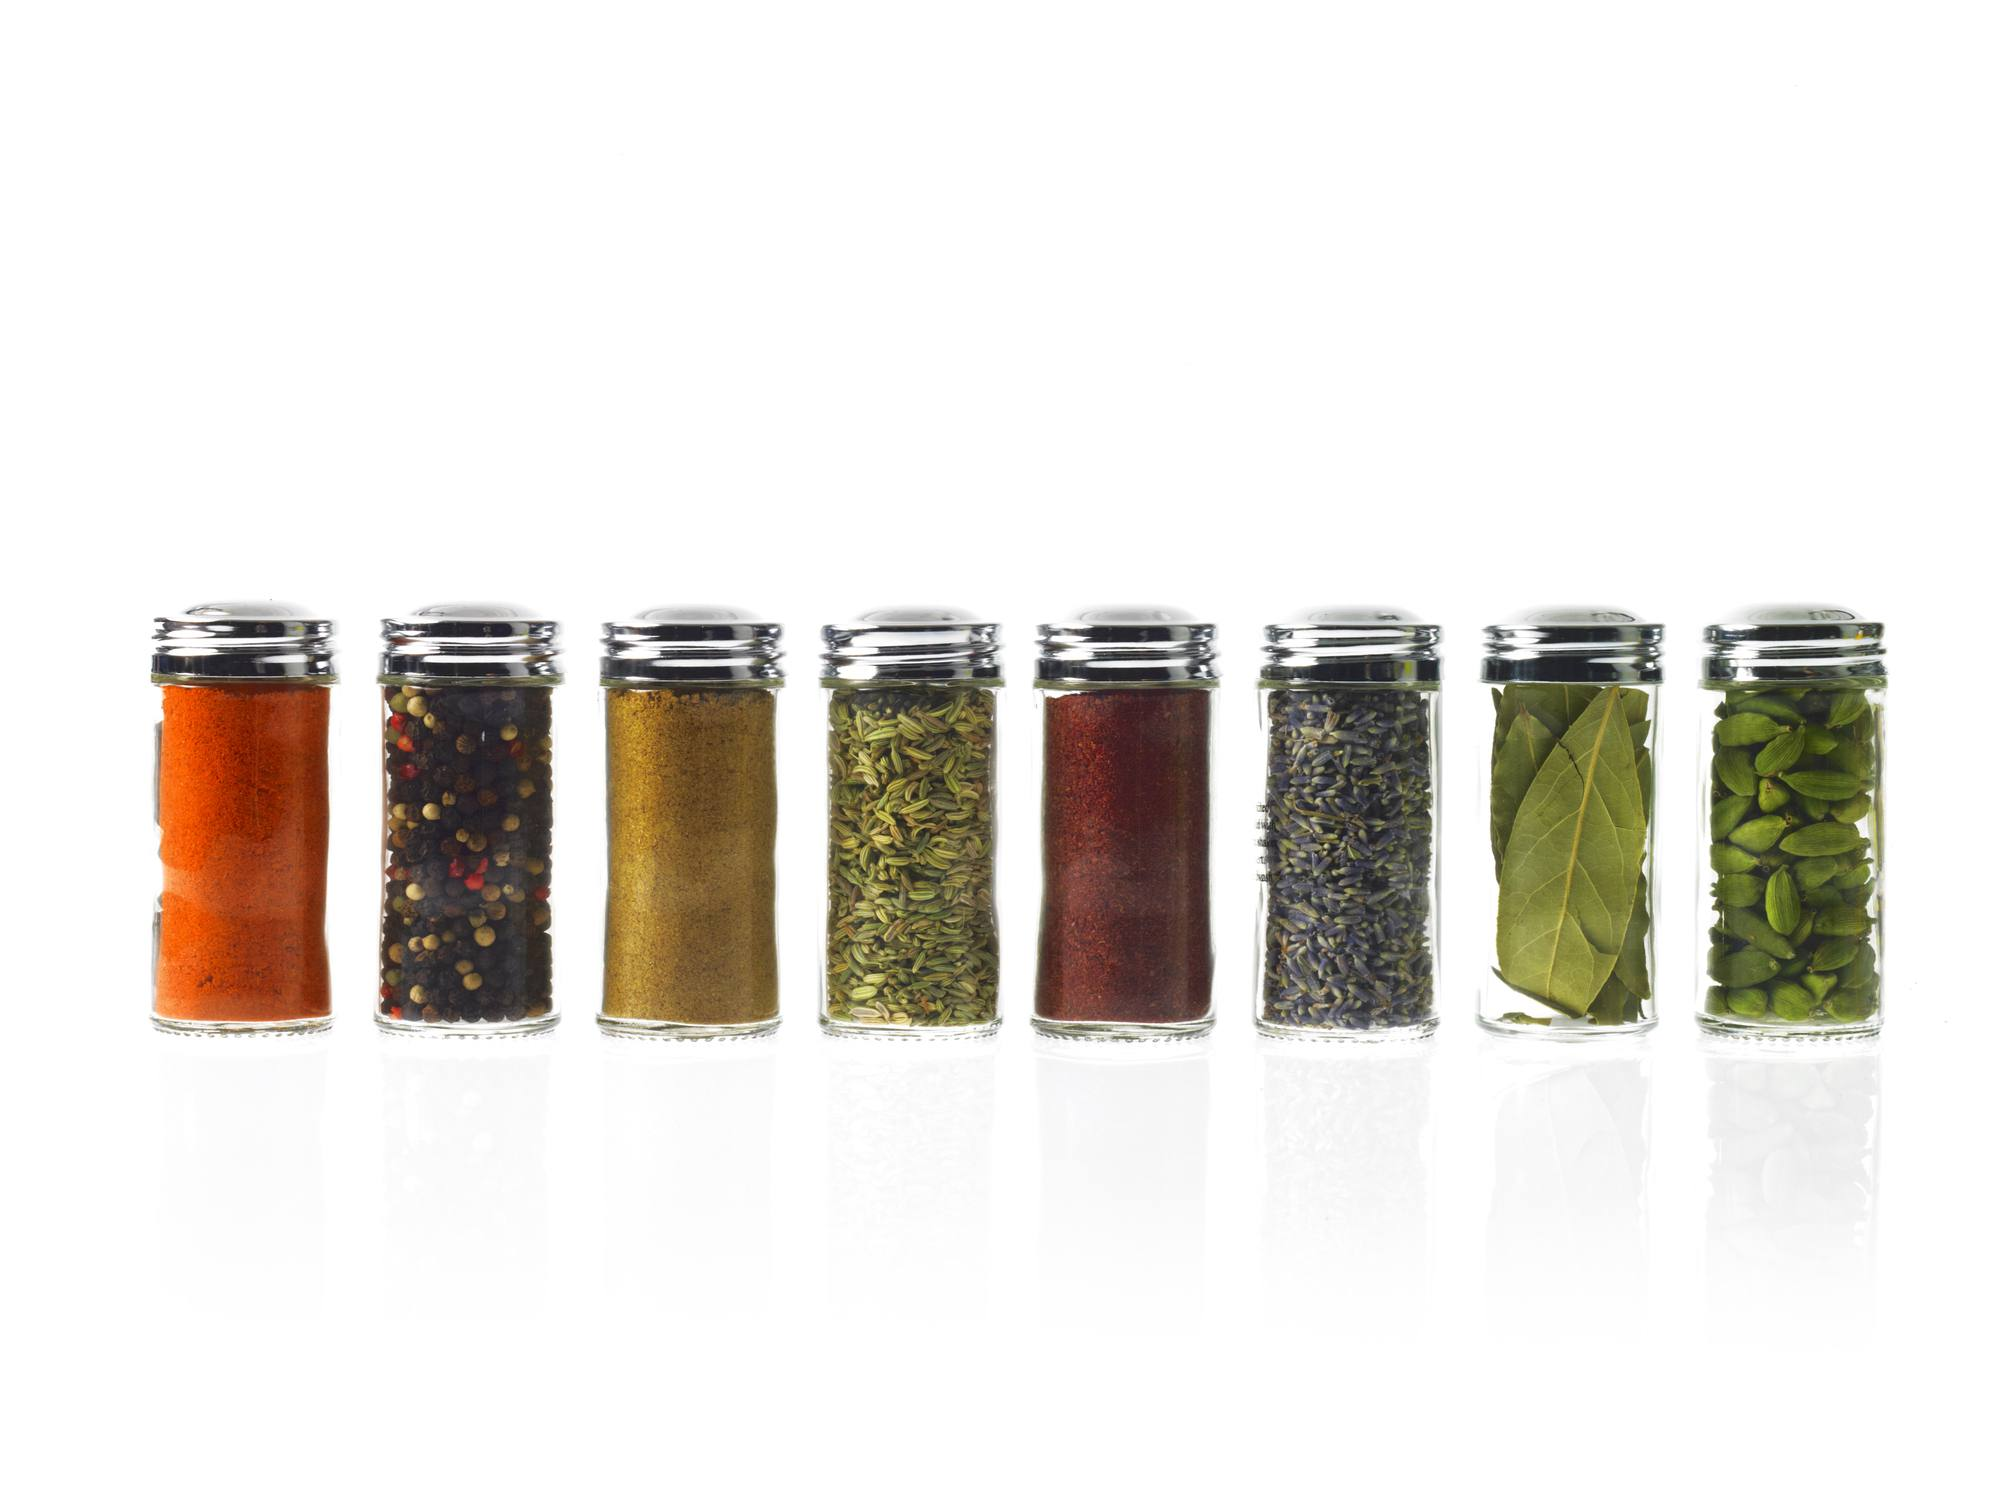 Jars of Spices